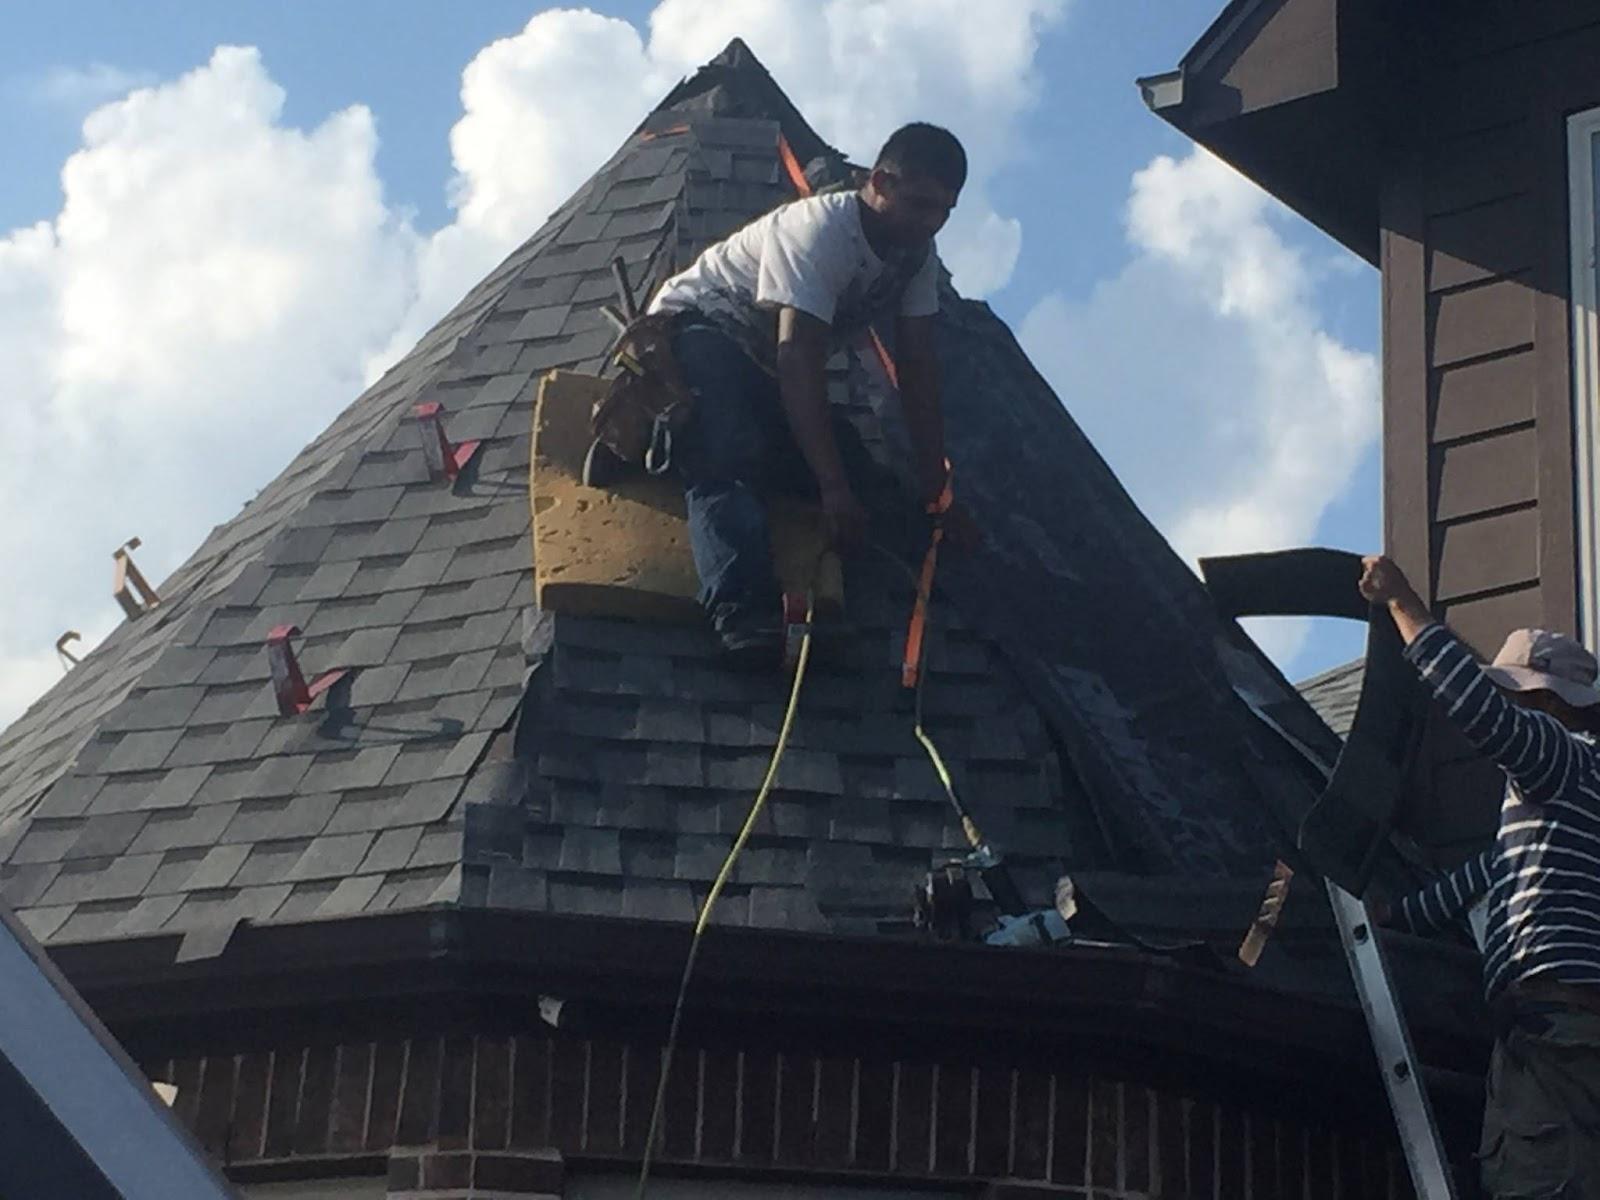 Better Roof Conical Roof Repair Replacement And Precautions